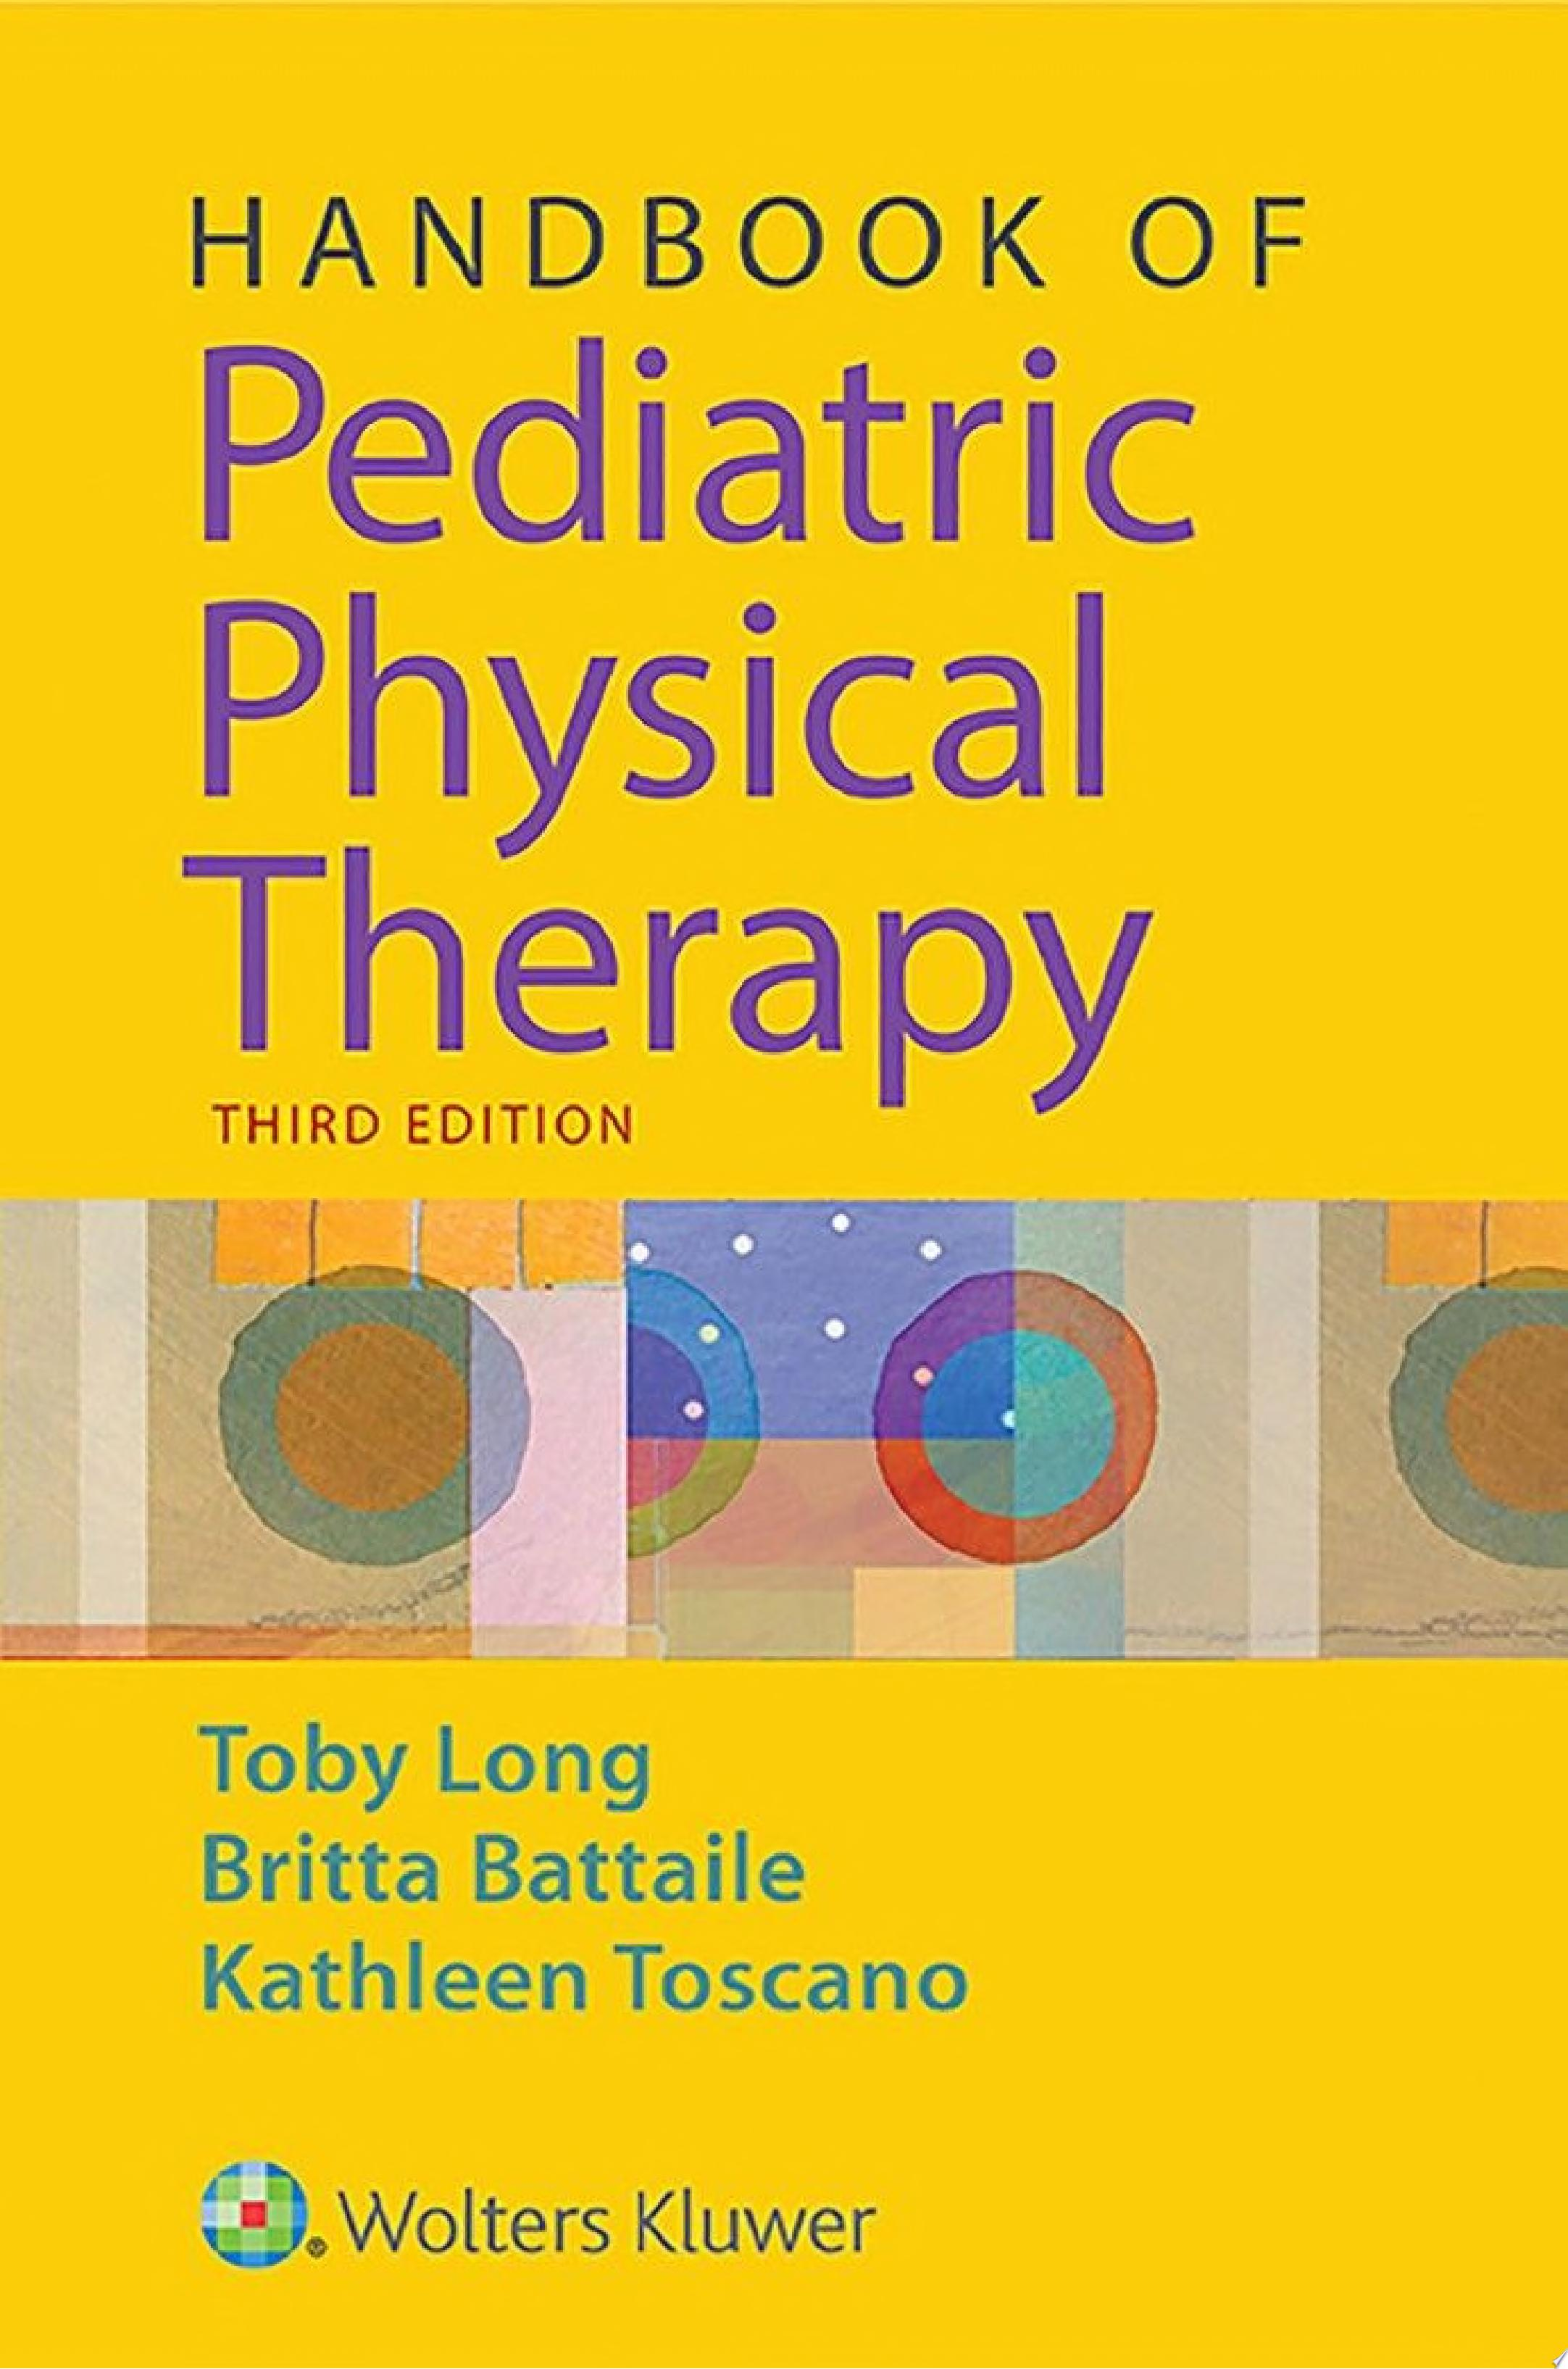 Handbook of Pediatric Physical Therapy